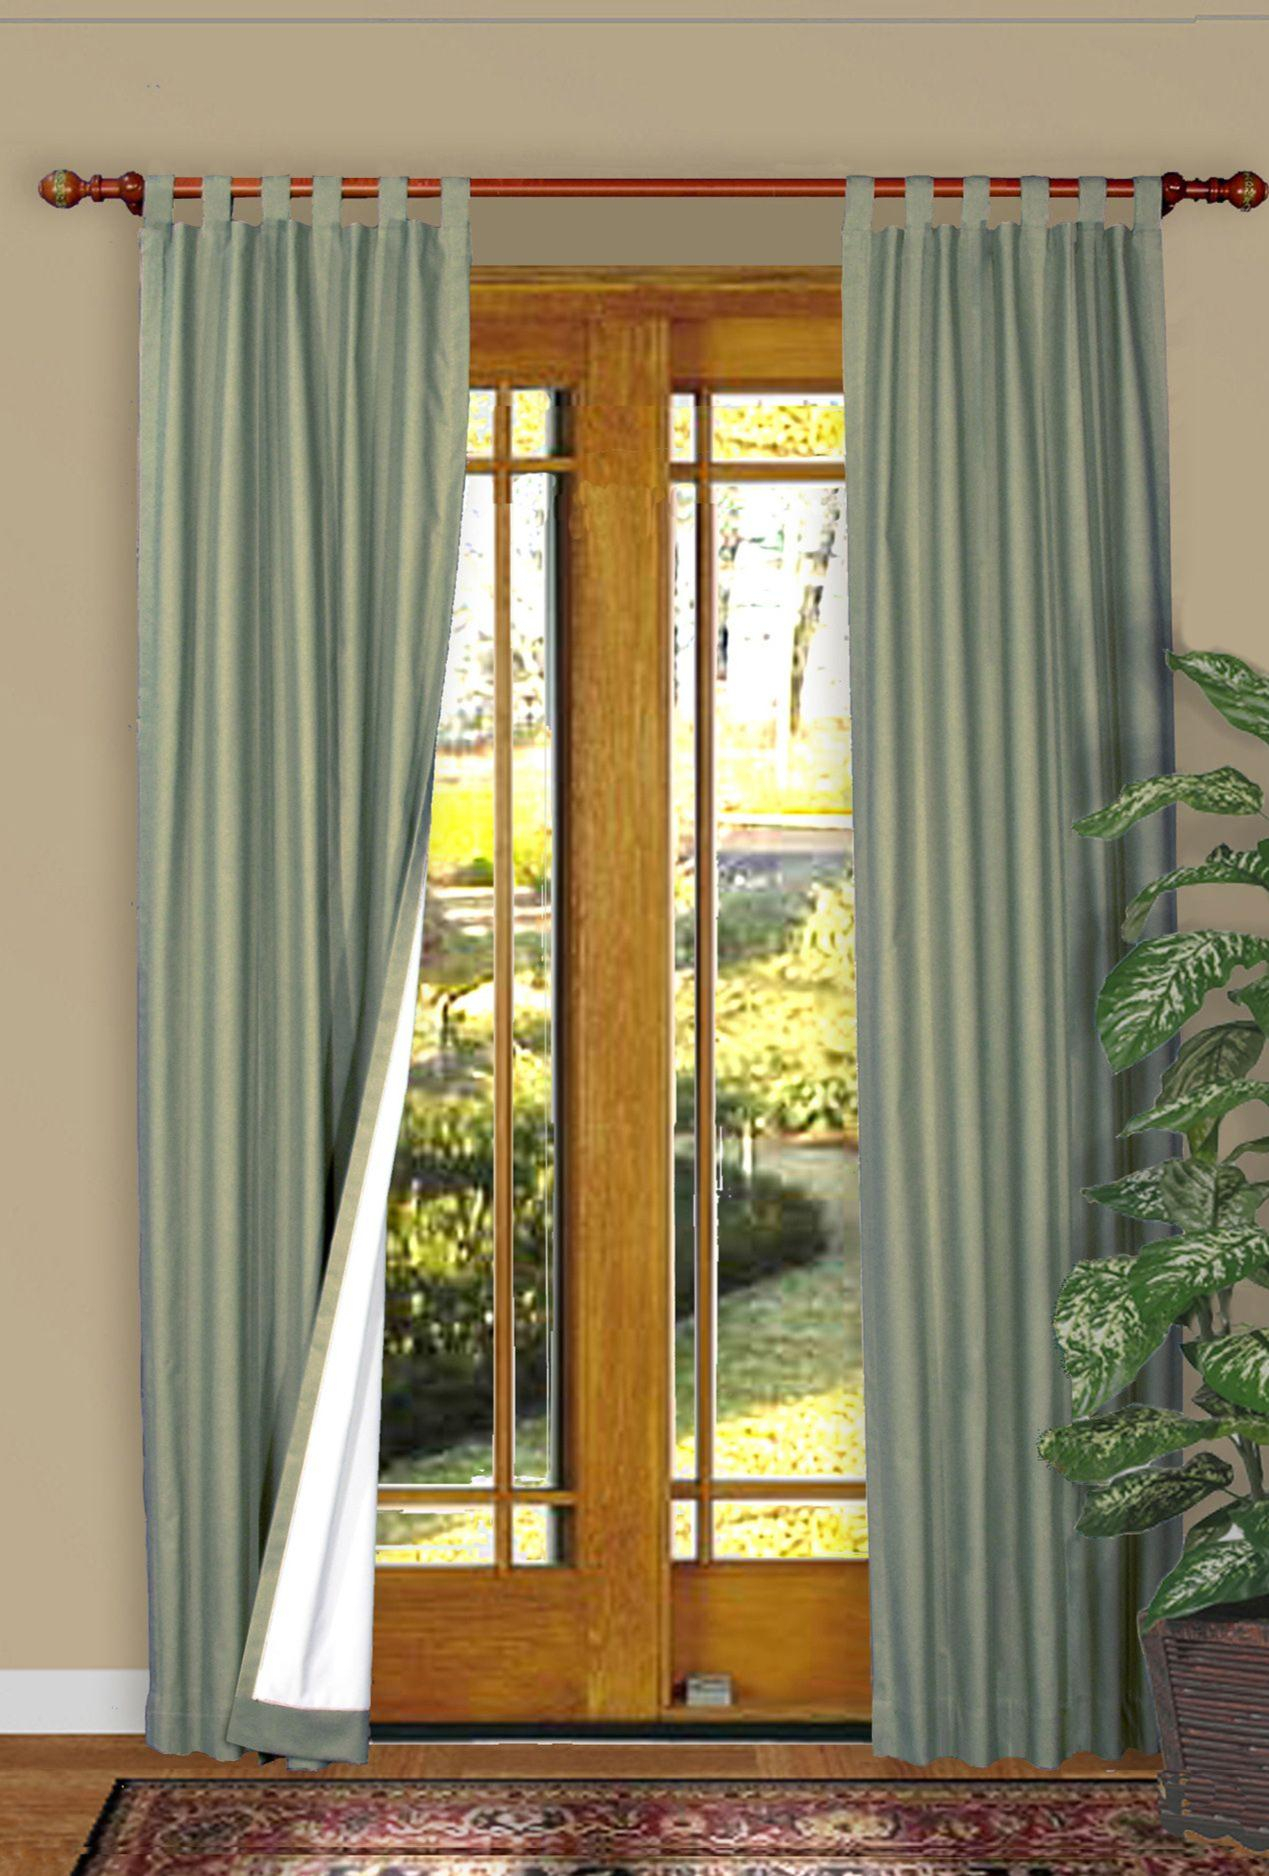 Weathermate Insulated Tab Top Curtains, Thermal Curtains Pertaining To Insulated Cotton Curtain Panel Pairs (View 19 of 20)